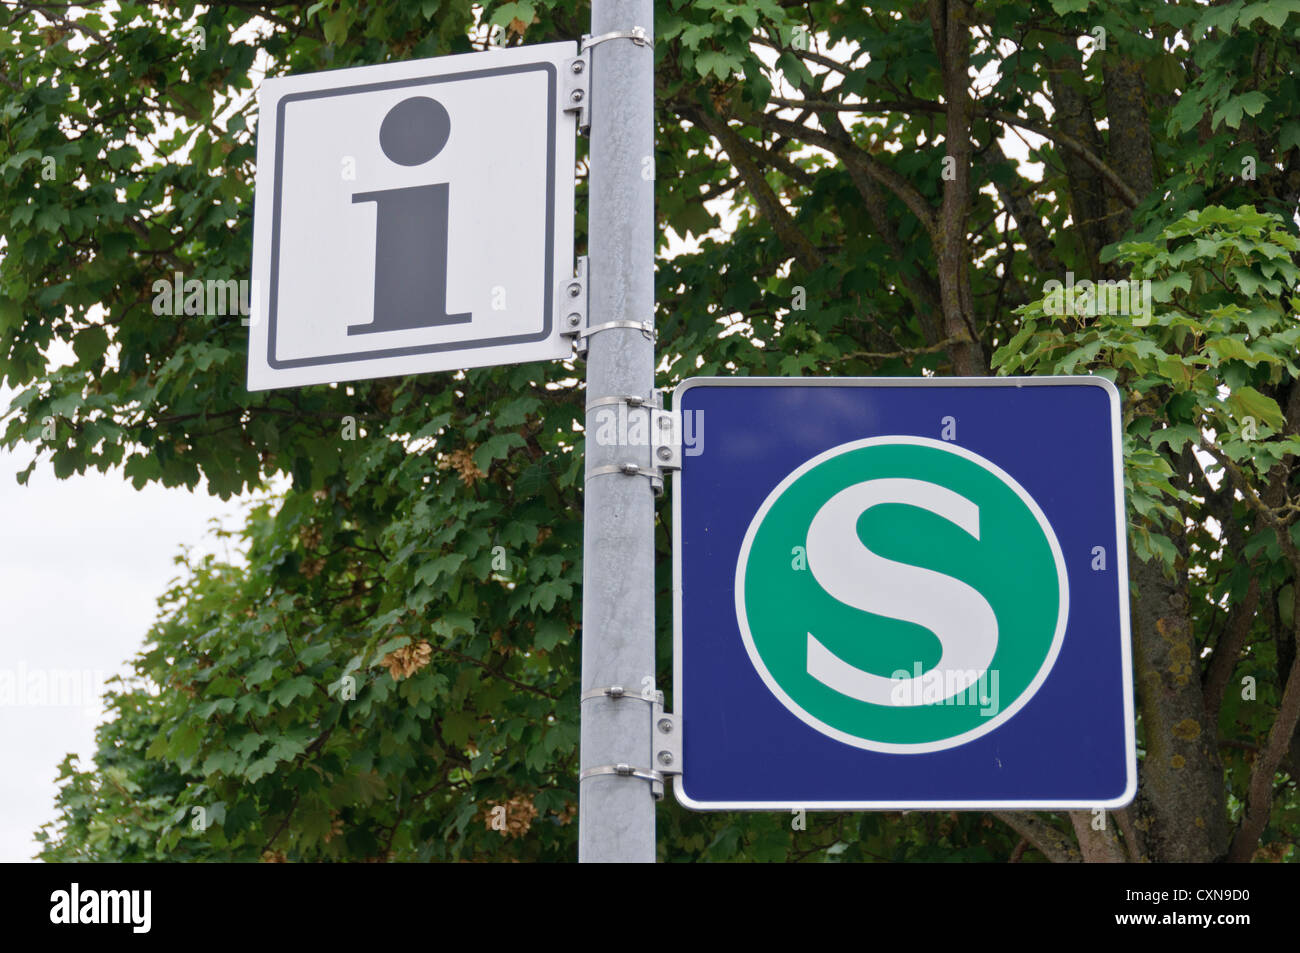 German or Swiss S-Bahn, commuter passenger train, train station sign and information point sign signage post - Stock Image